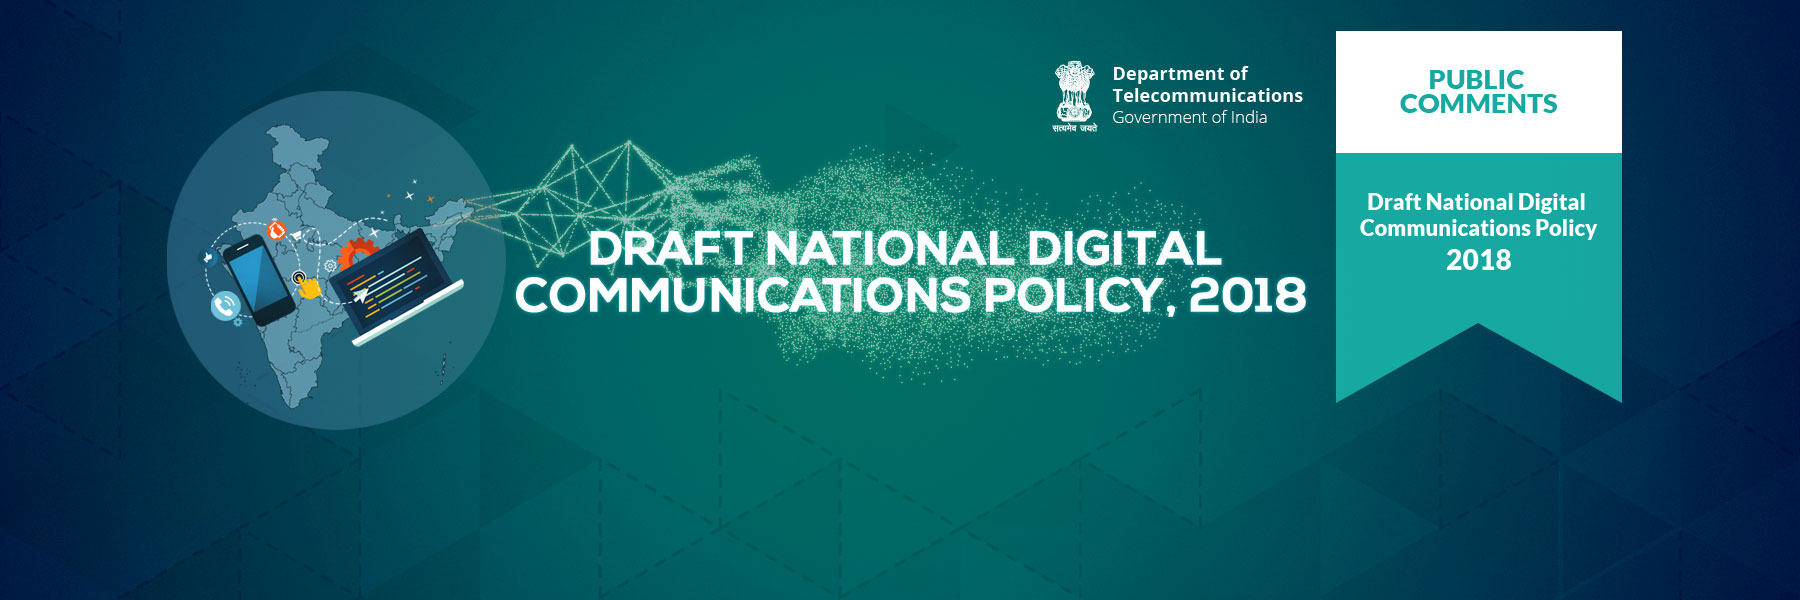 Broadband for All & Creating 4 Million Jobs key objectives of NDCP-2018